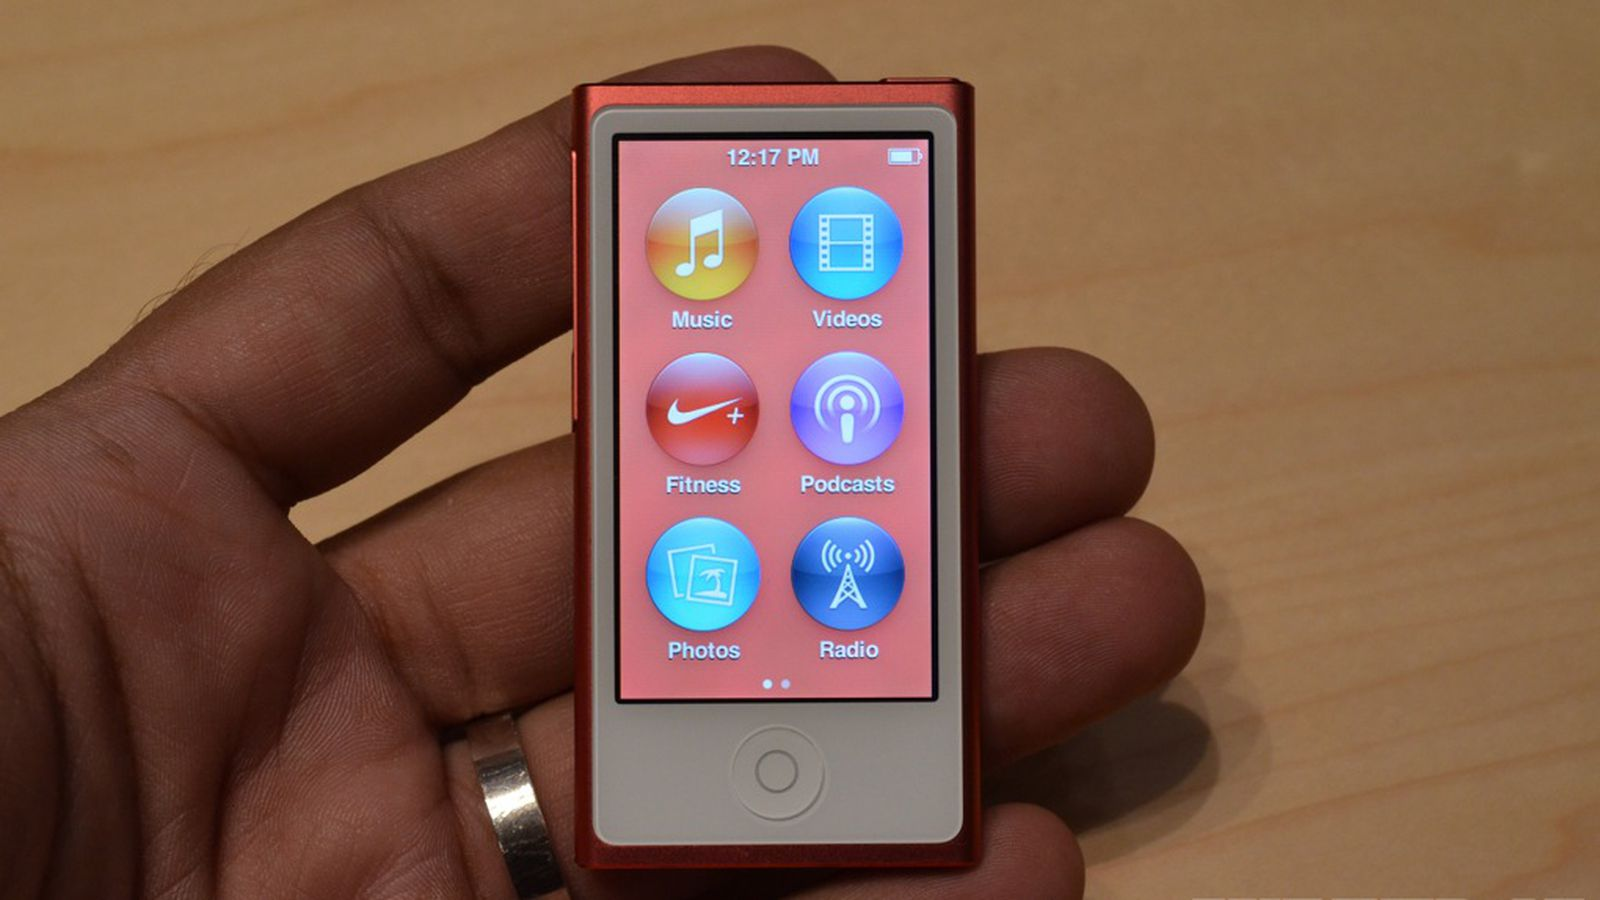 apples timid new ipod nano sidesteps a smartwatch